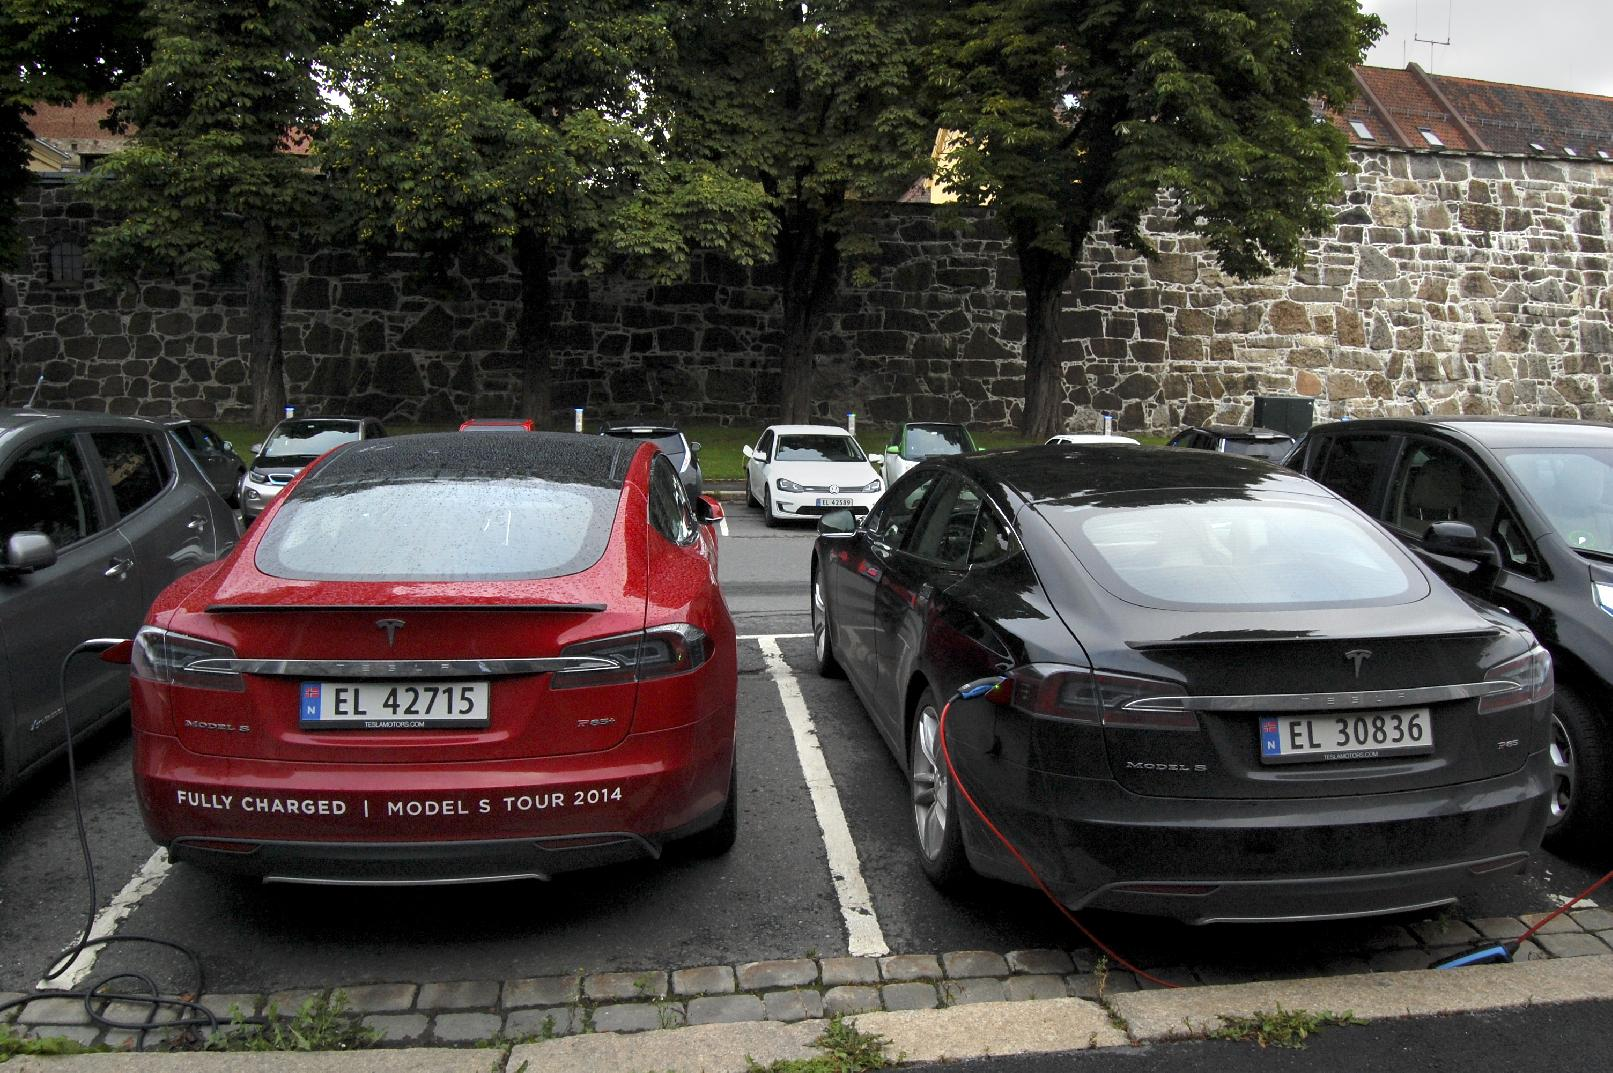 Cars are seen charging in free parking spaces for electric cars in central Oslo